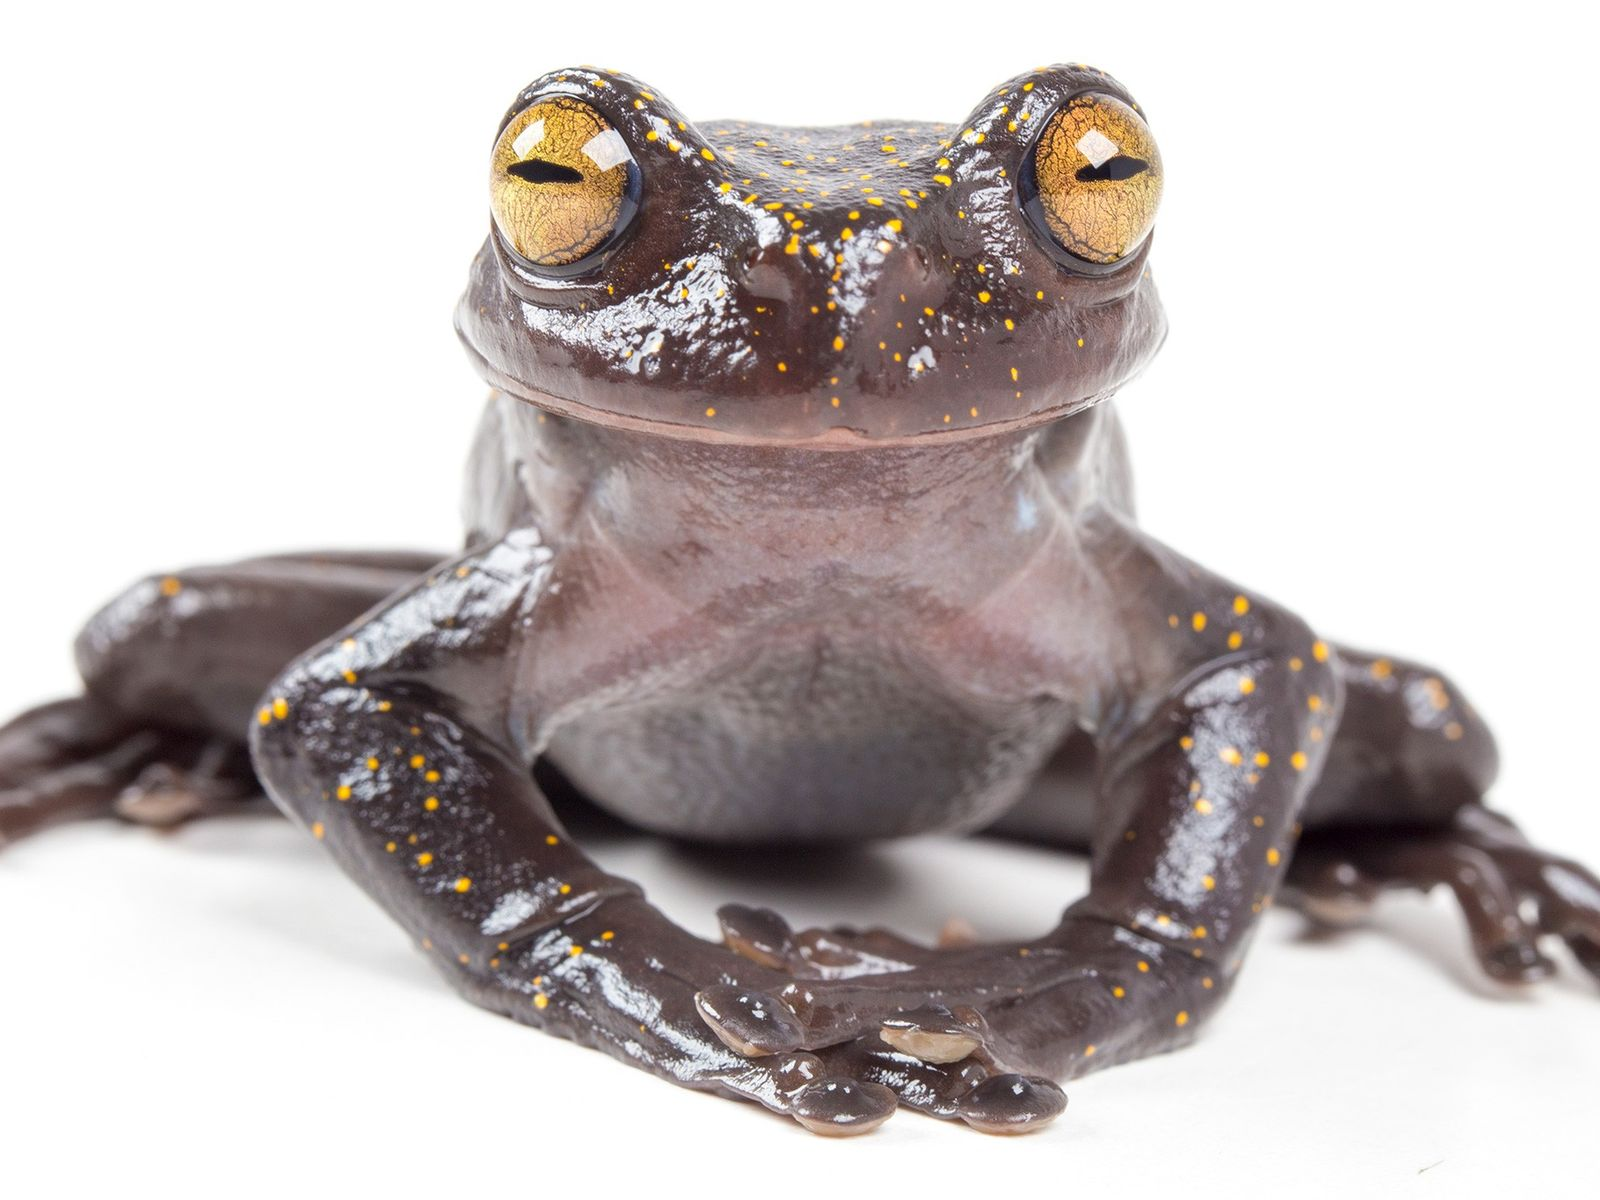 An adult of the recently discovered species 'Hyloscirtus hillisi' seems to smile for the camera.